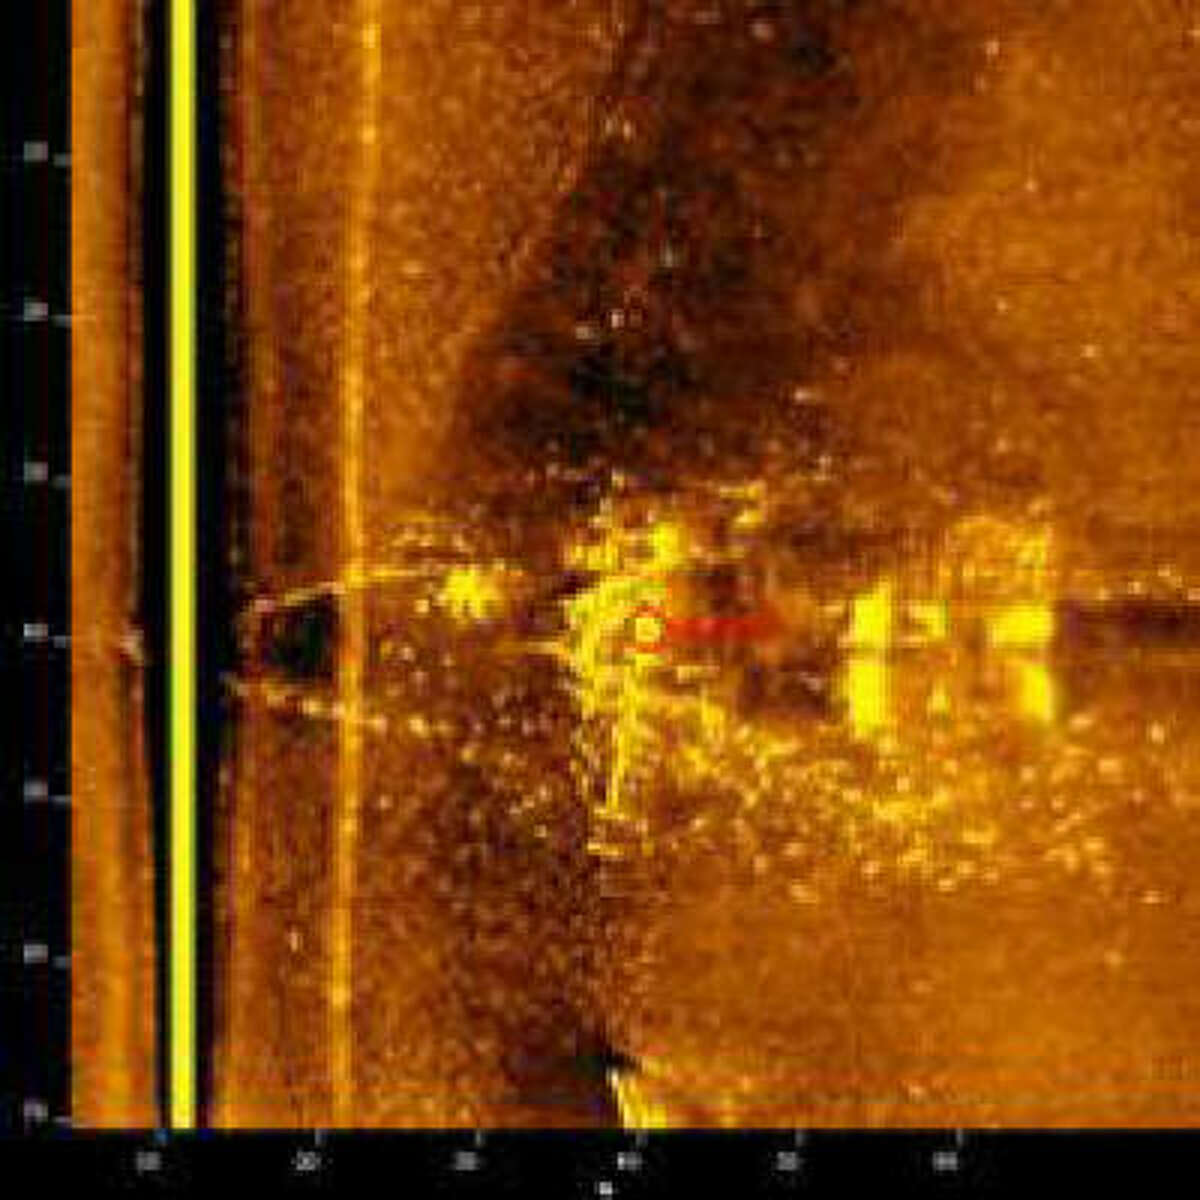 Experts say this sonar image, taken by crews surveying the Gulf of Mexico for Hurricane Ike debris, could be that of the Civil War-era merchant ship the Carolina.